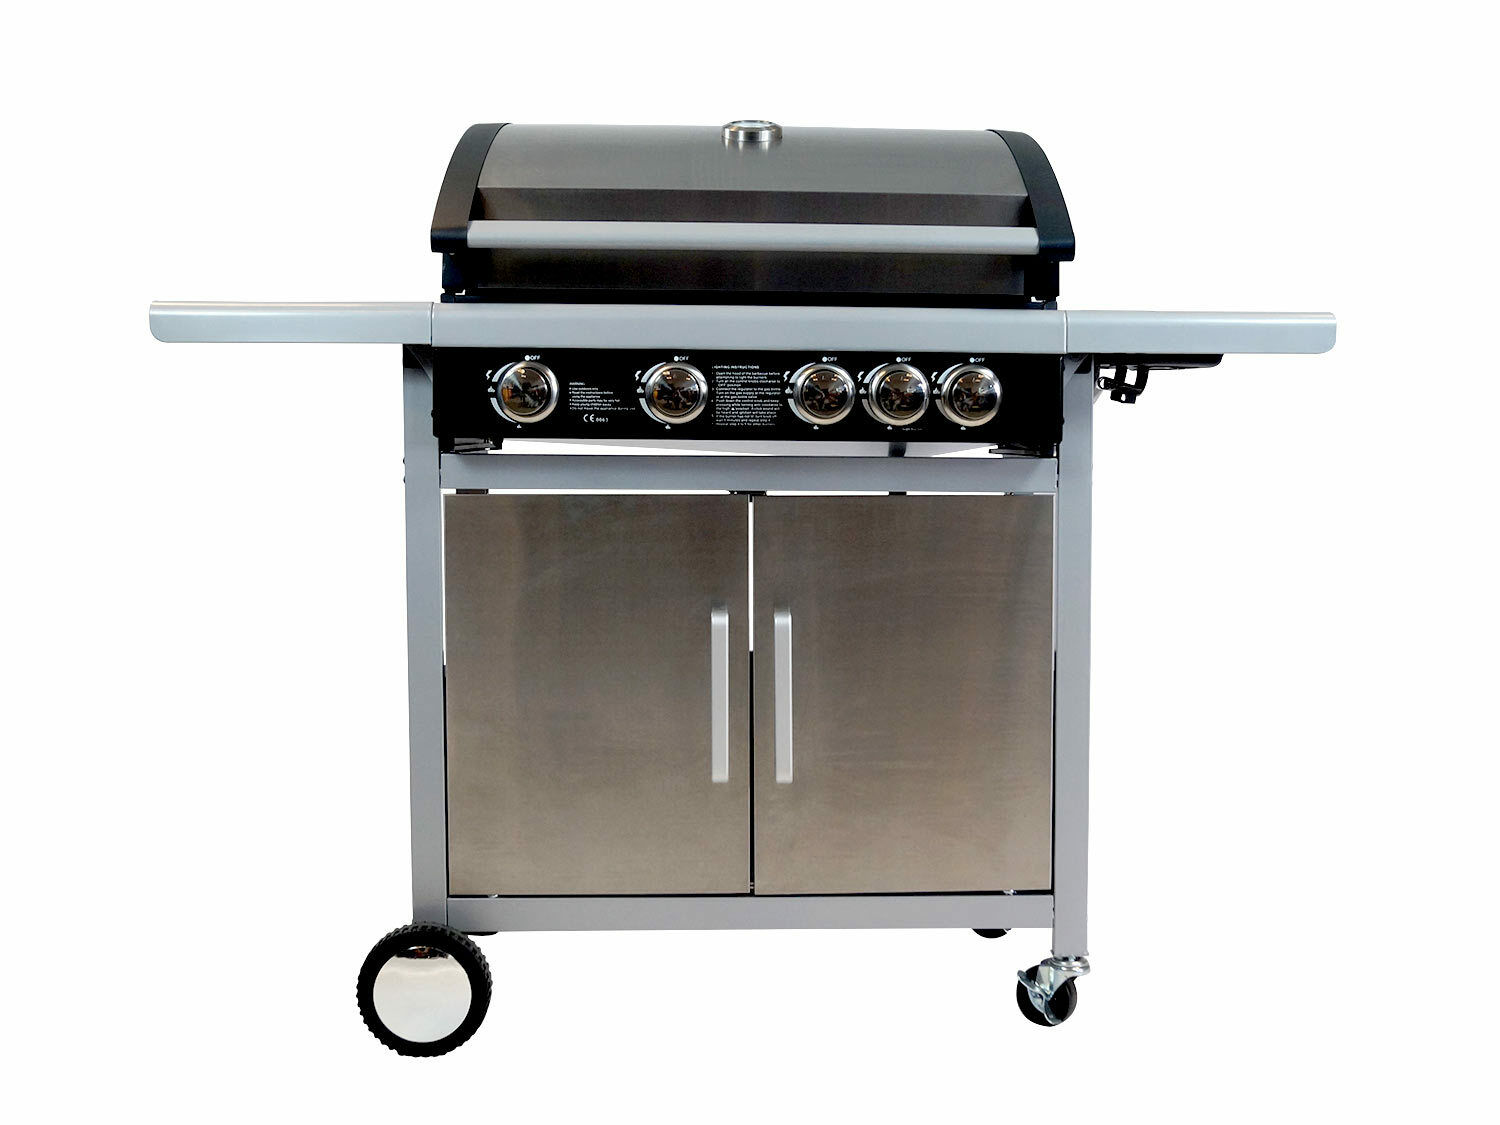 Enders Gasgrill Monroe 3 S Turbo : Enders bbq gasgrill monroe sik turbo gas grill steak